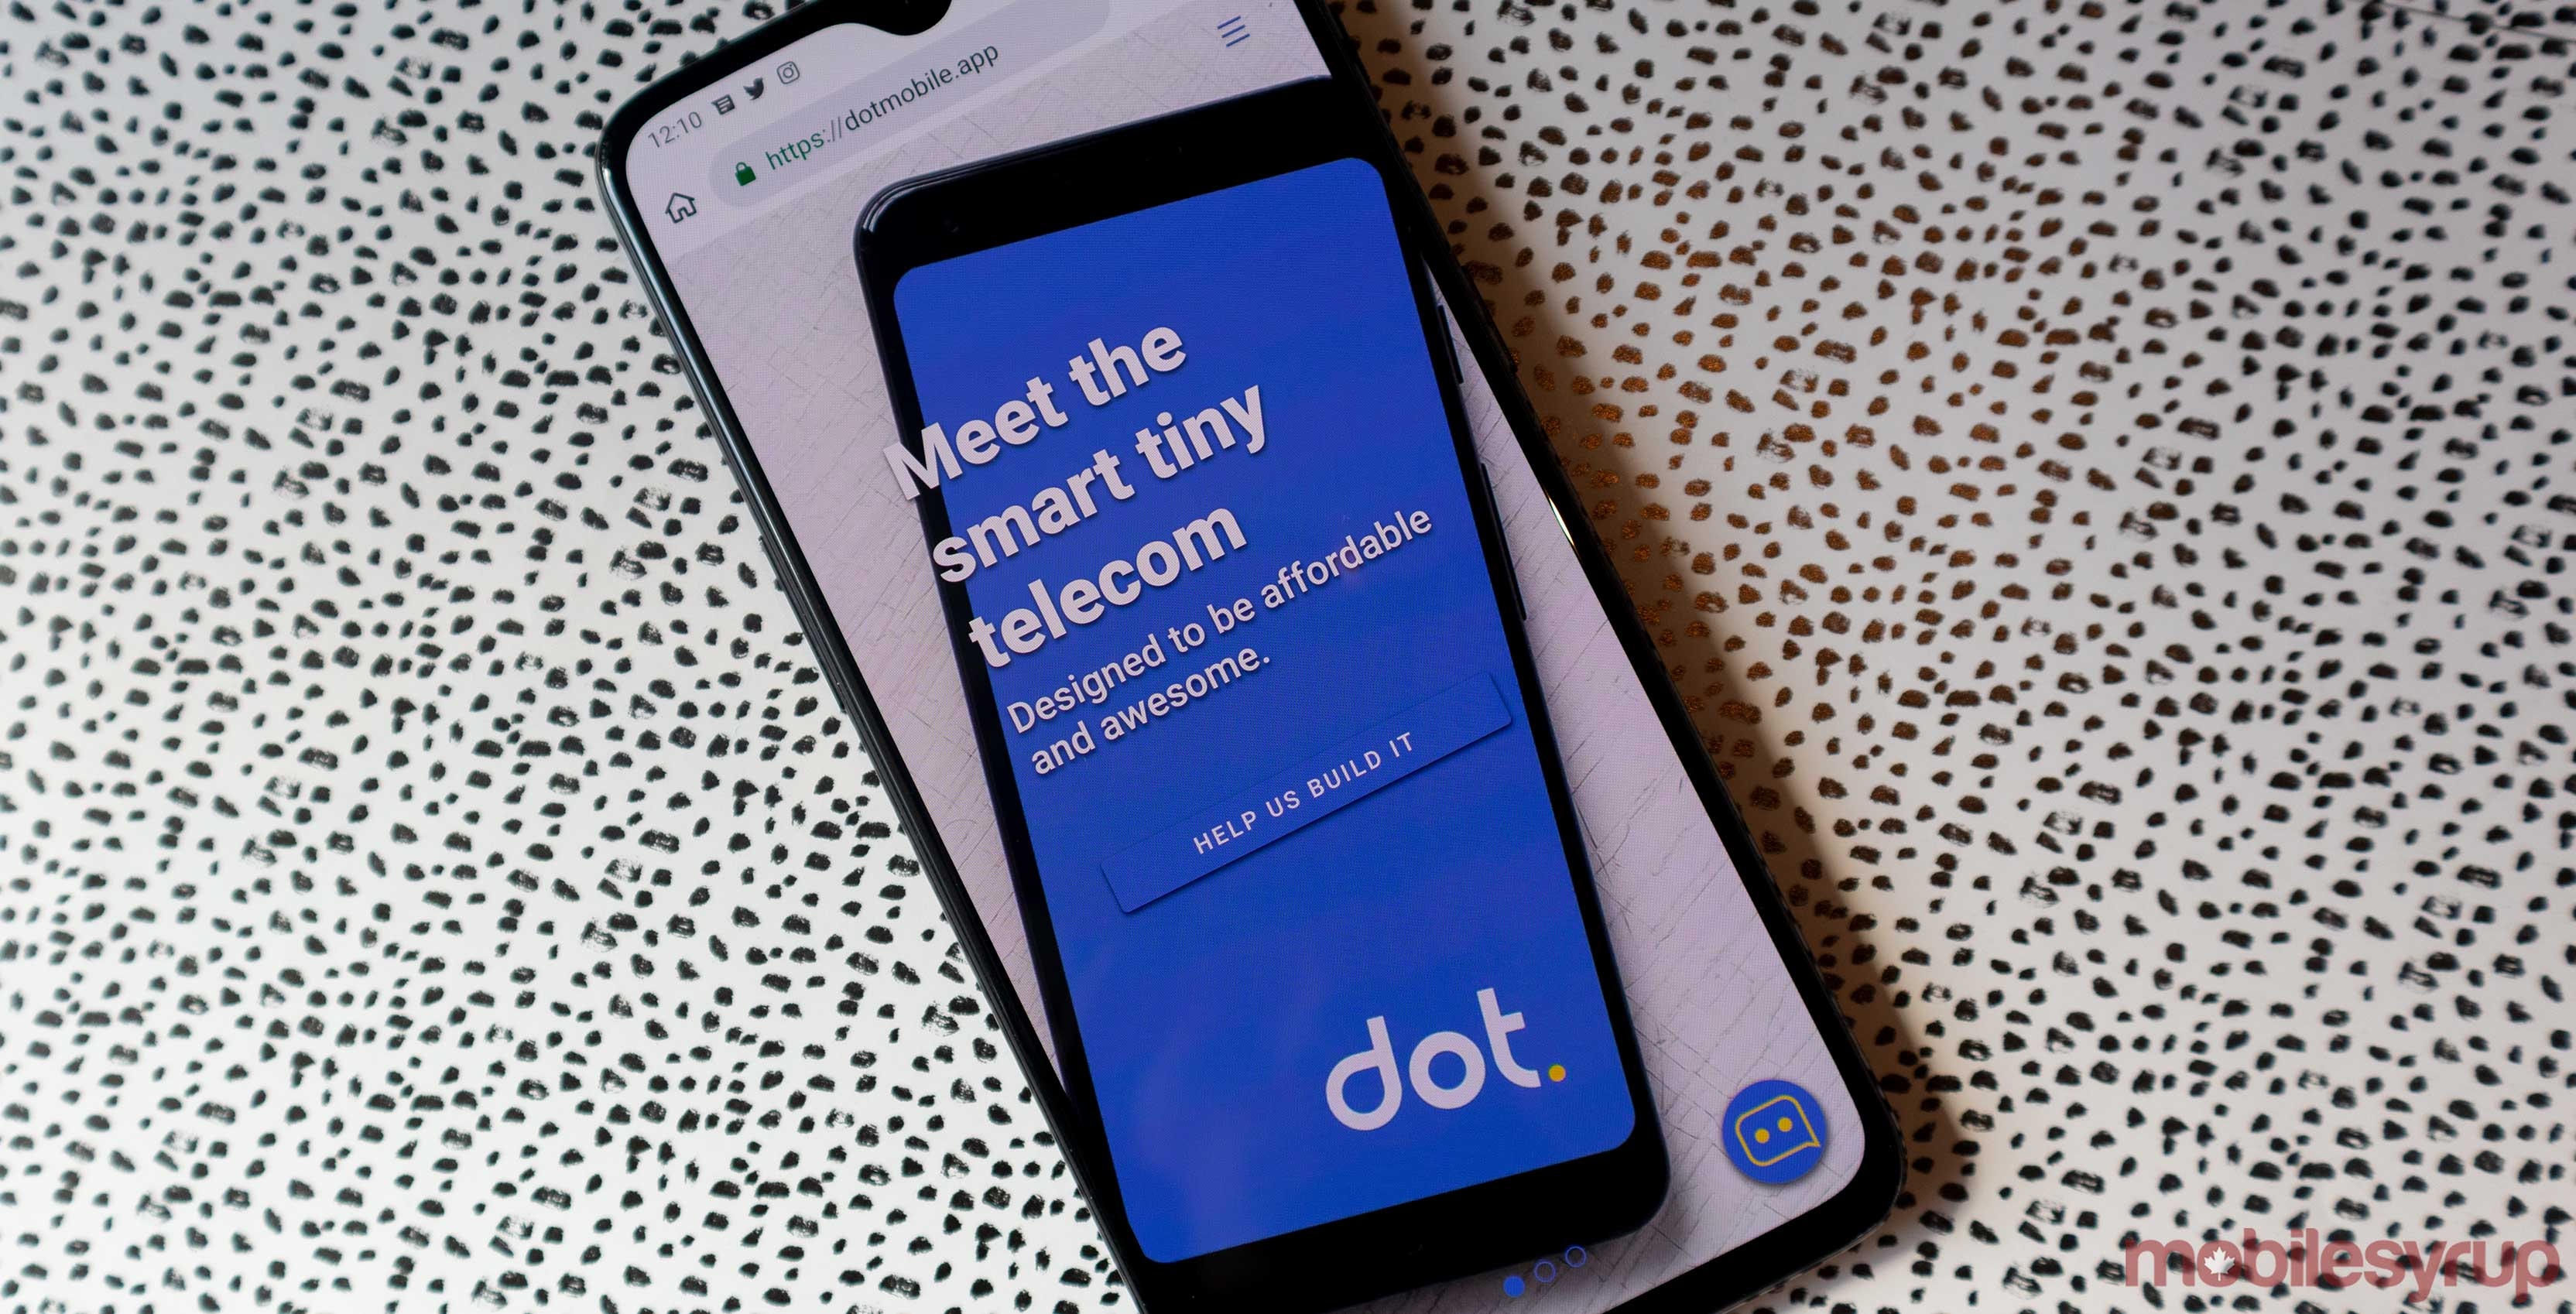 Dotmobile aims to be the next Canadian MNVO to offer affordable wireless services